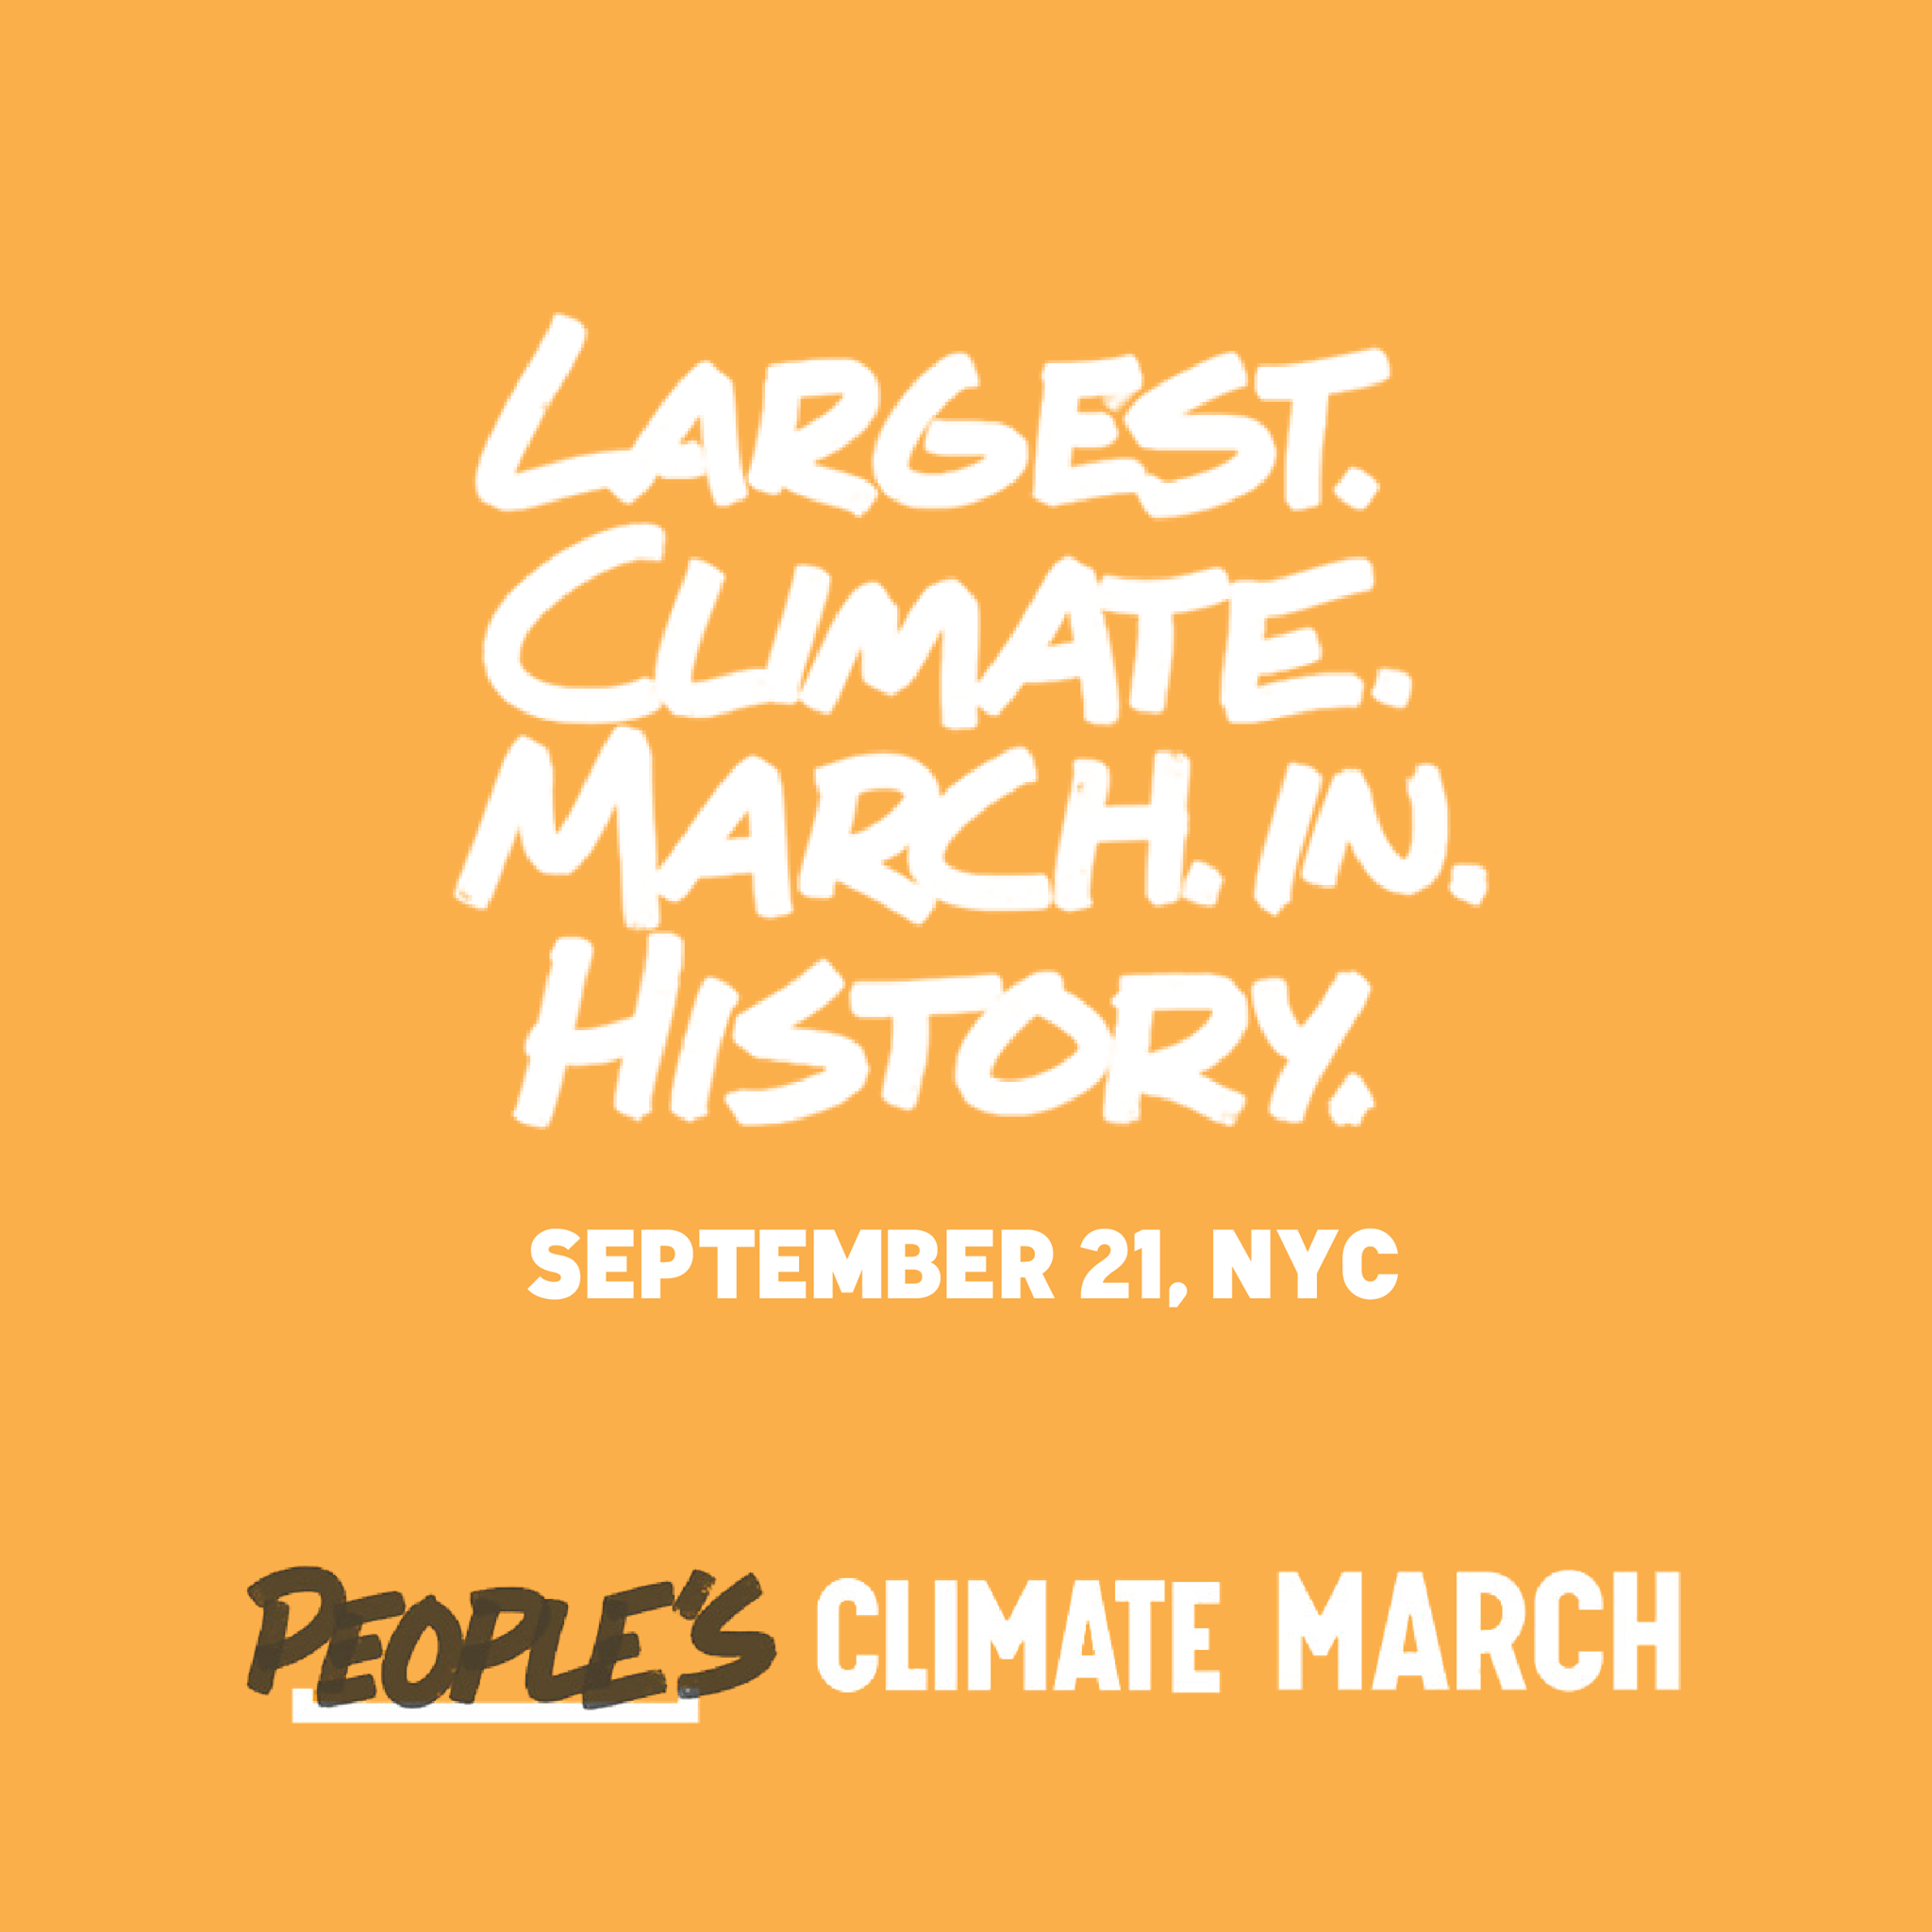 Largest climate march in history